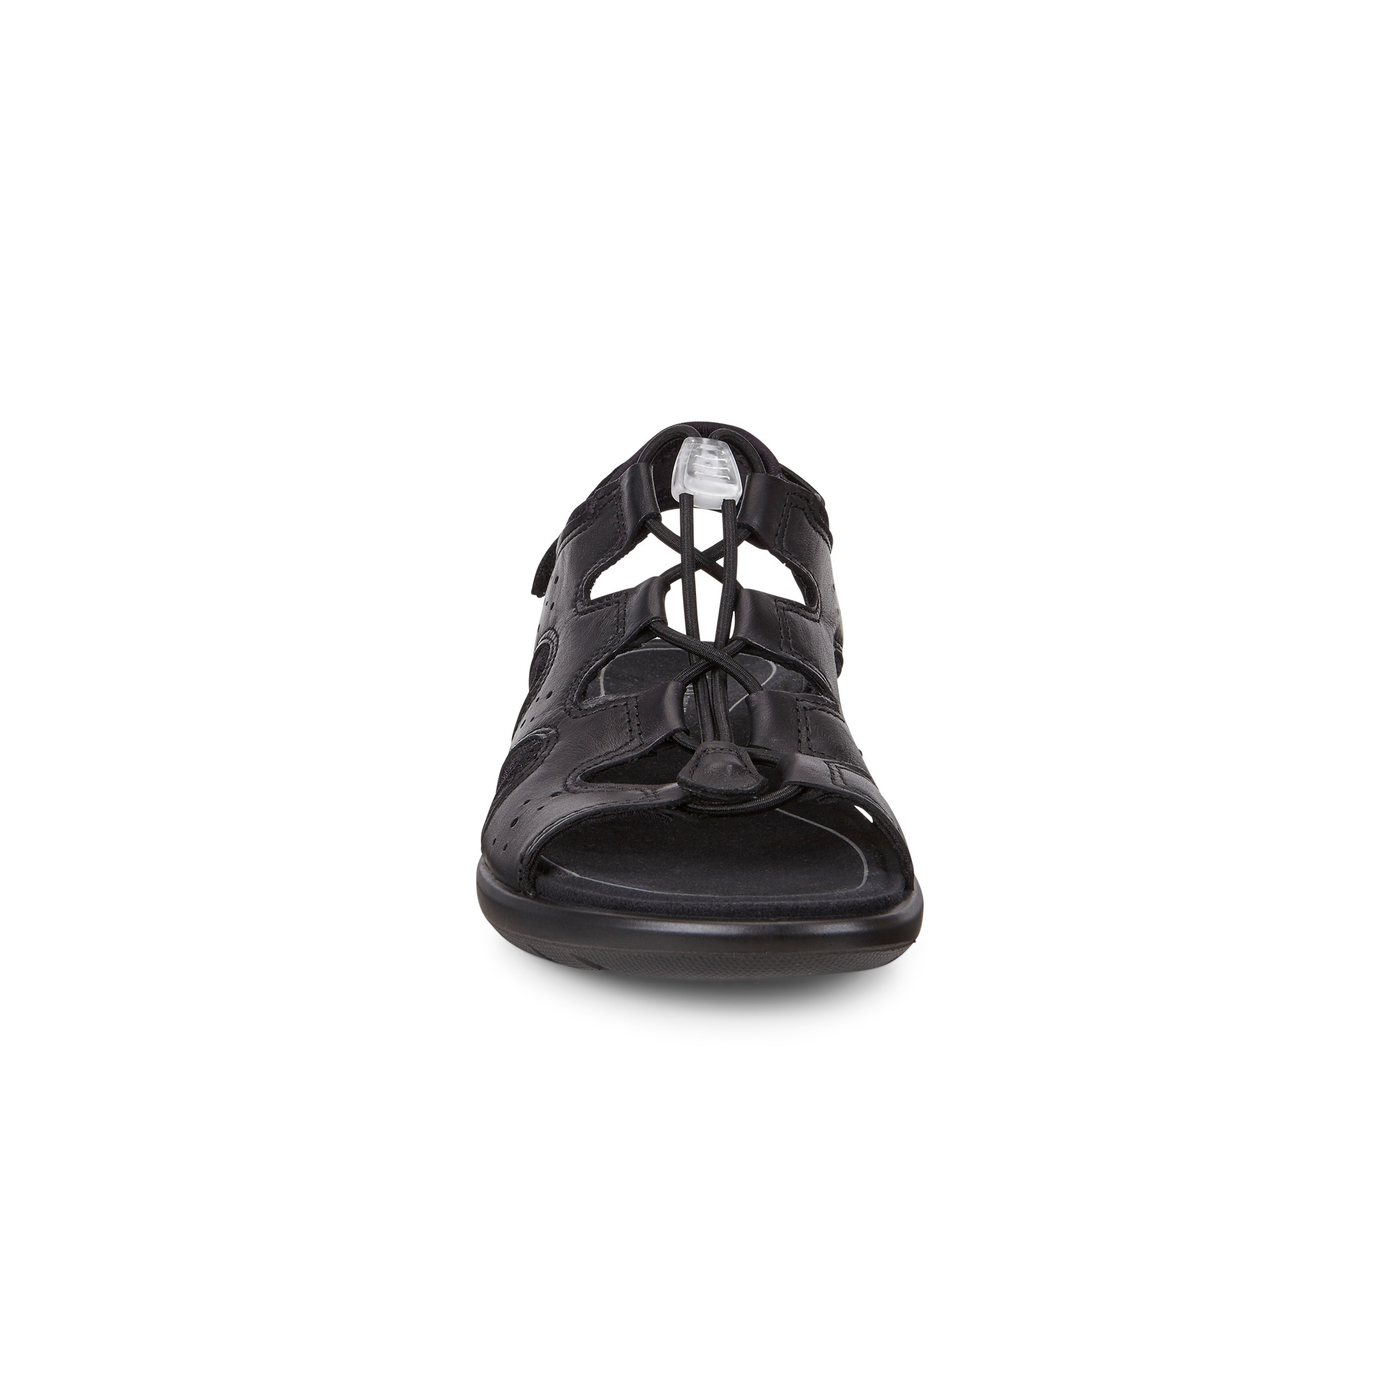 ECCO Soft 5 Toggle Sandal